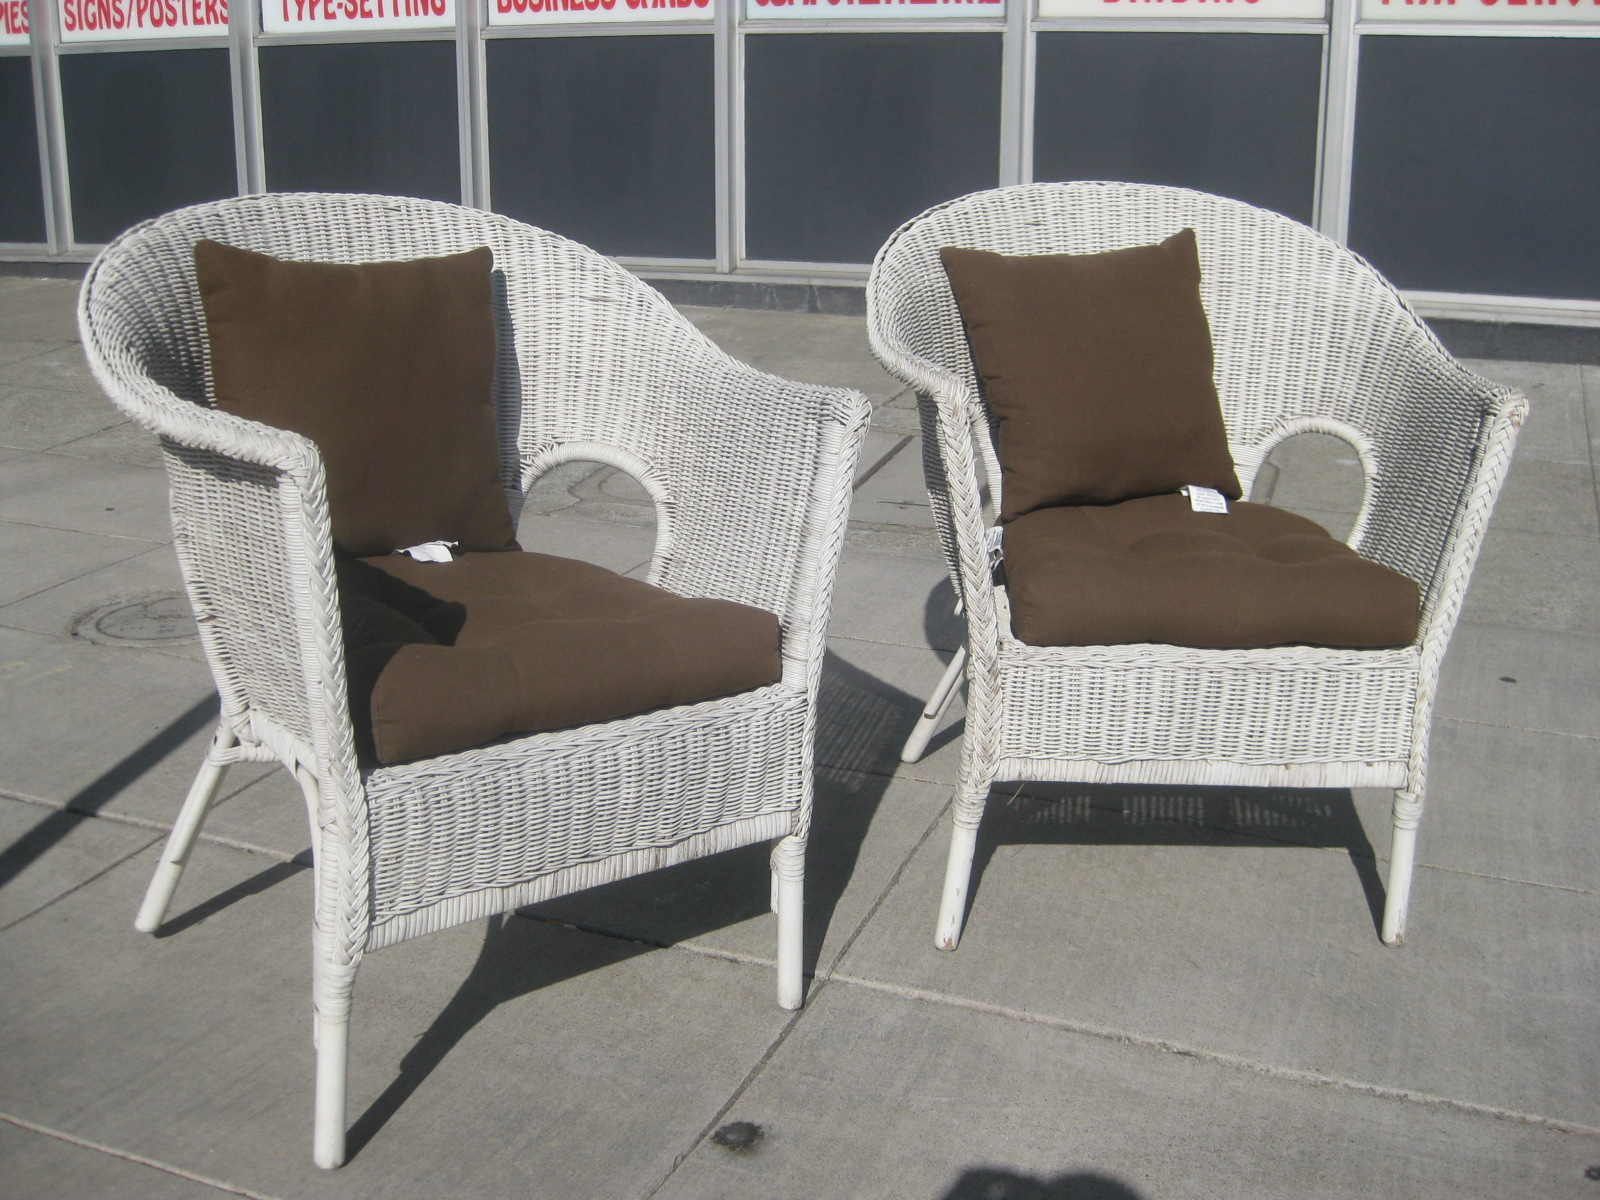 rocking chairs at lowes foods chair design history uhuru furniture and collectibles sold white wicker